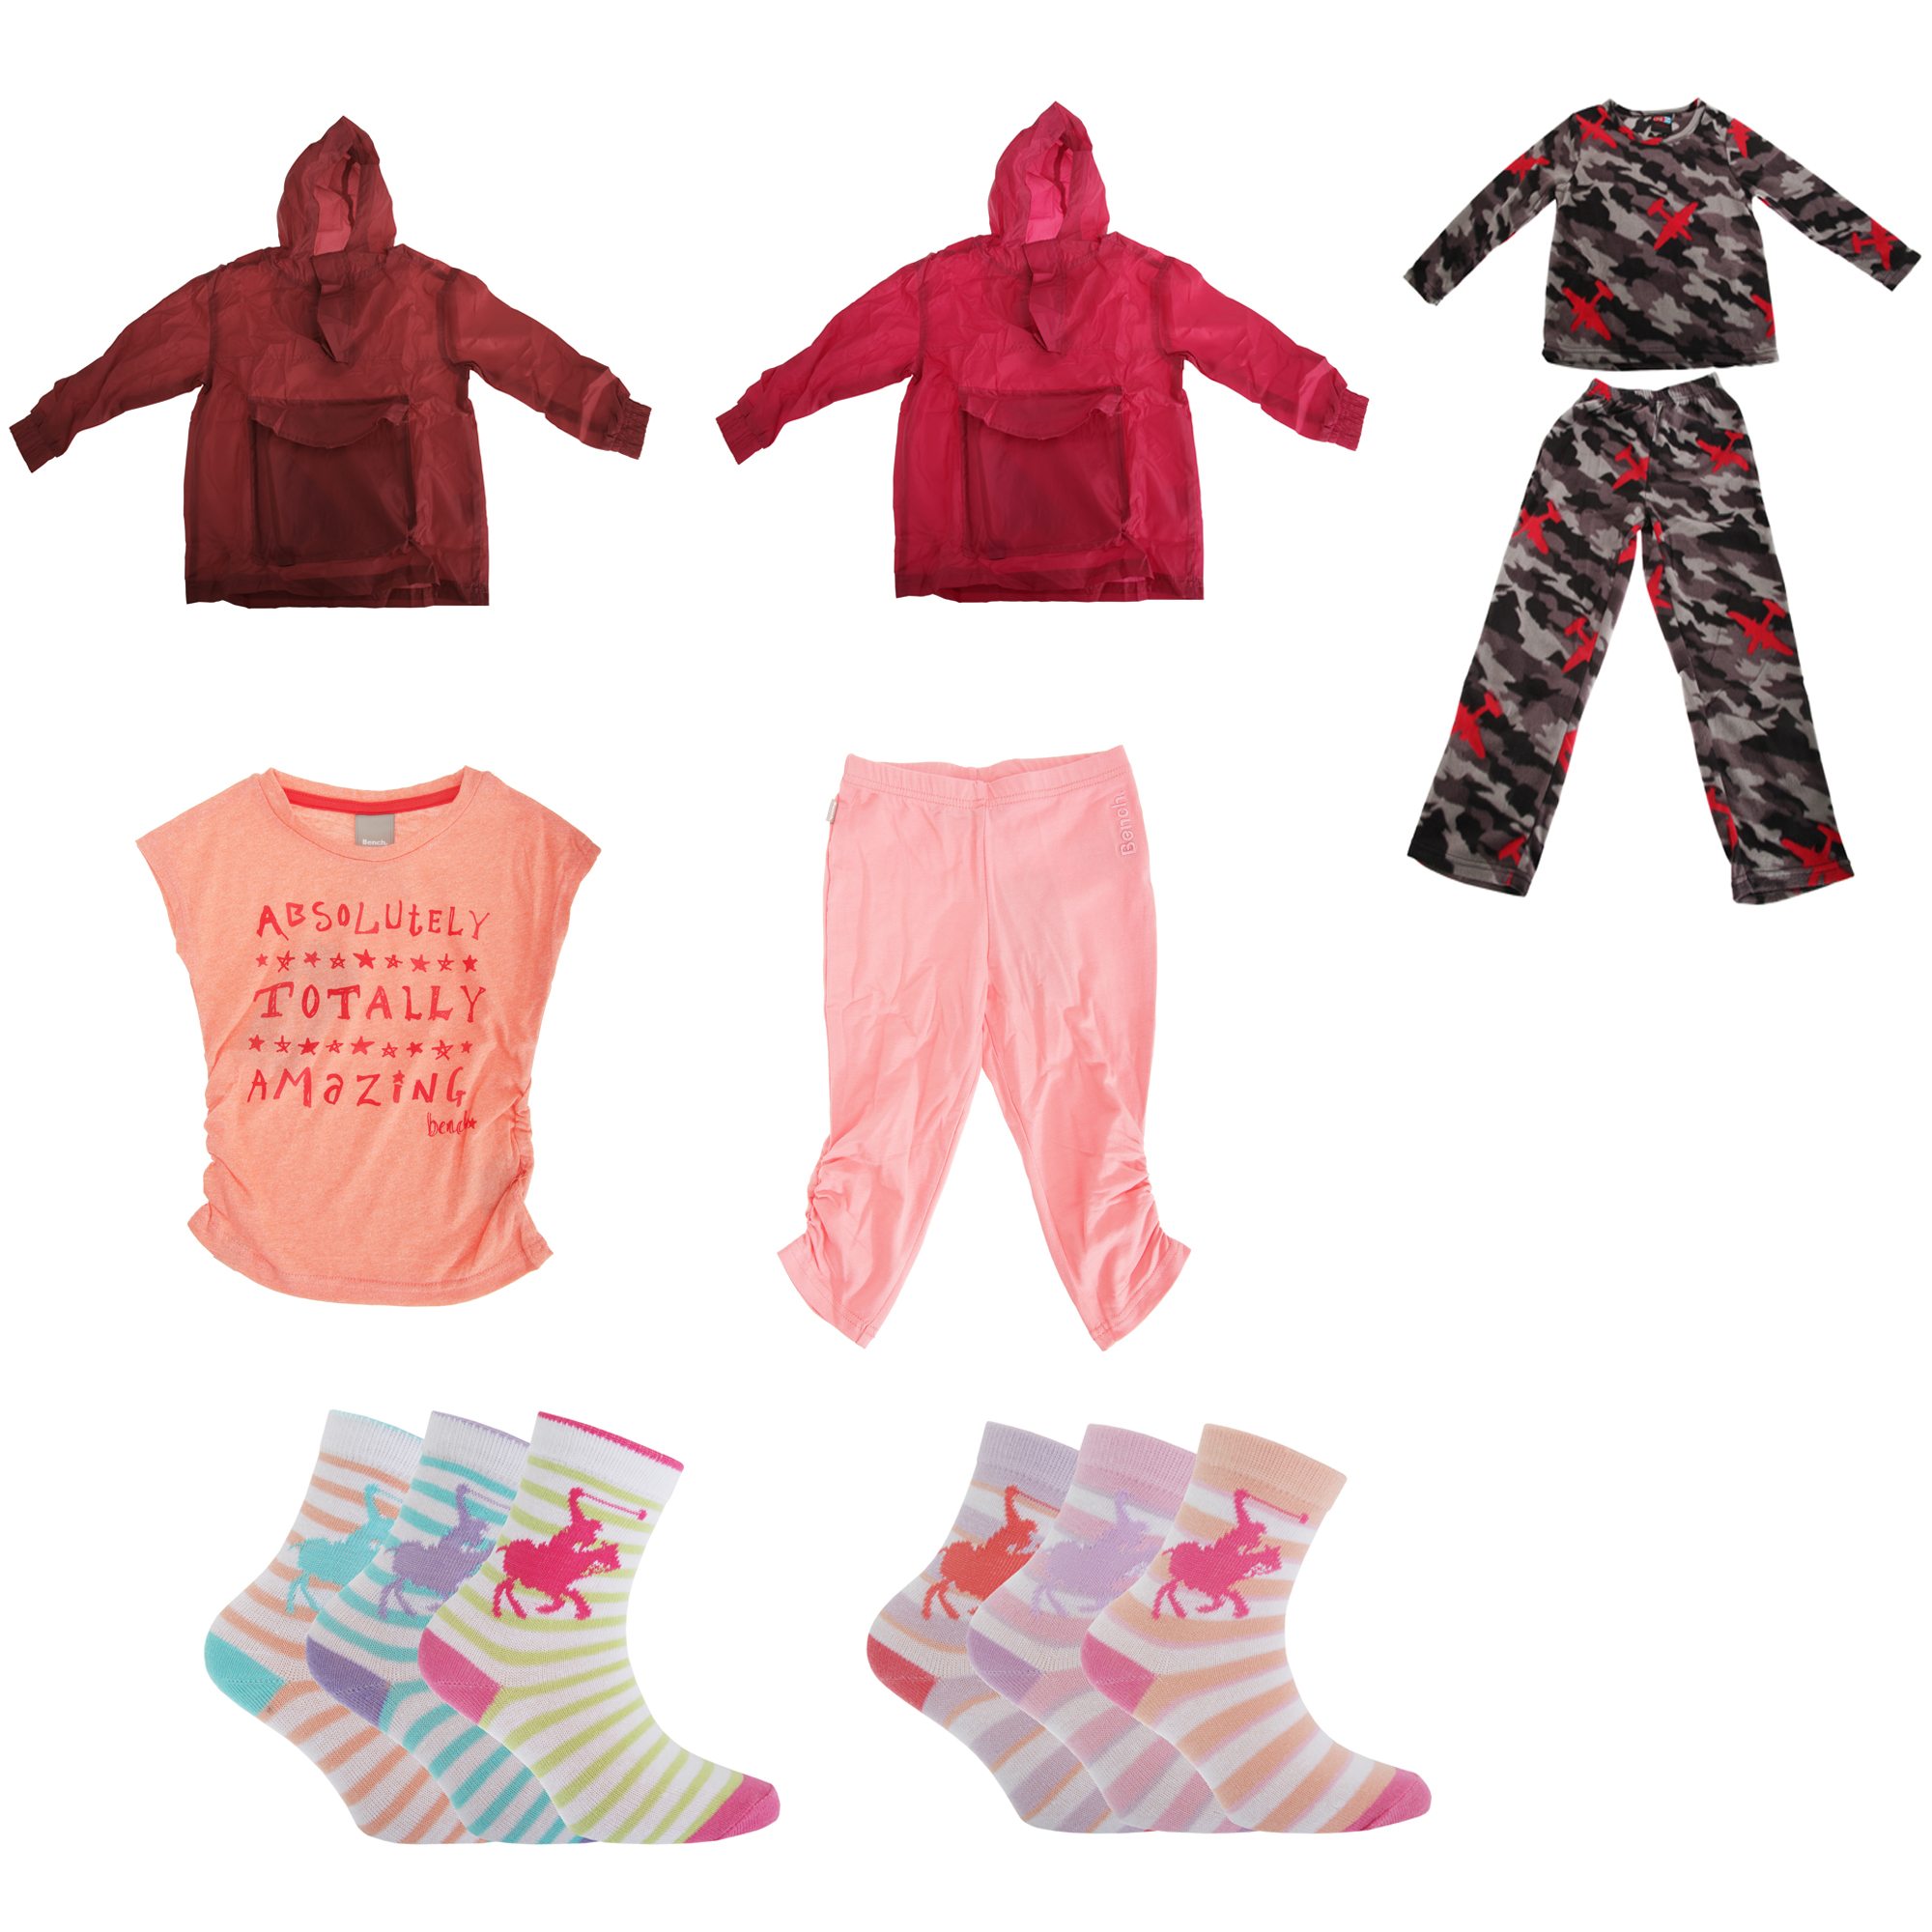 Bulk, Wholesale, Job Lot, Clearance Assorted Clothing (Dresses, Tops, Footwear And More) (Box 8) (Assorted Childrens Clothing (Set of 58))